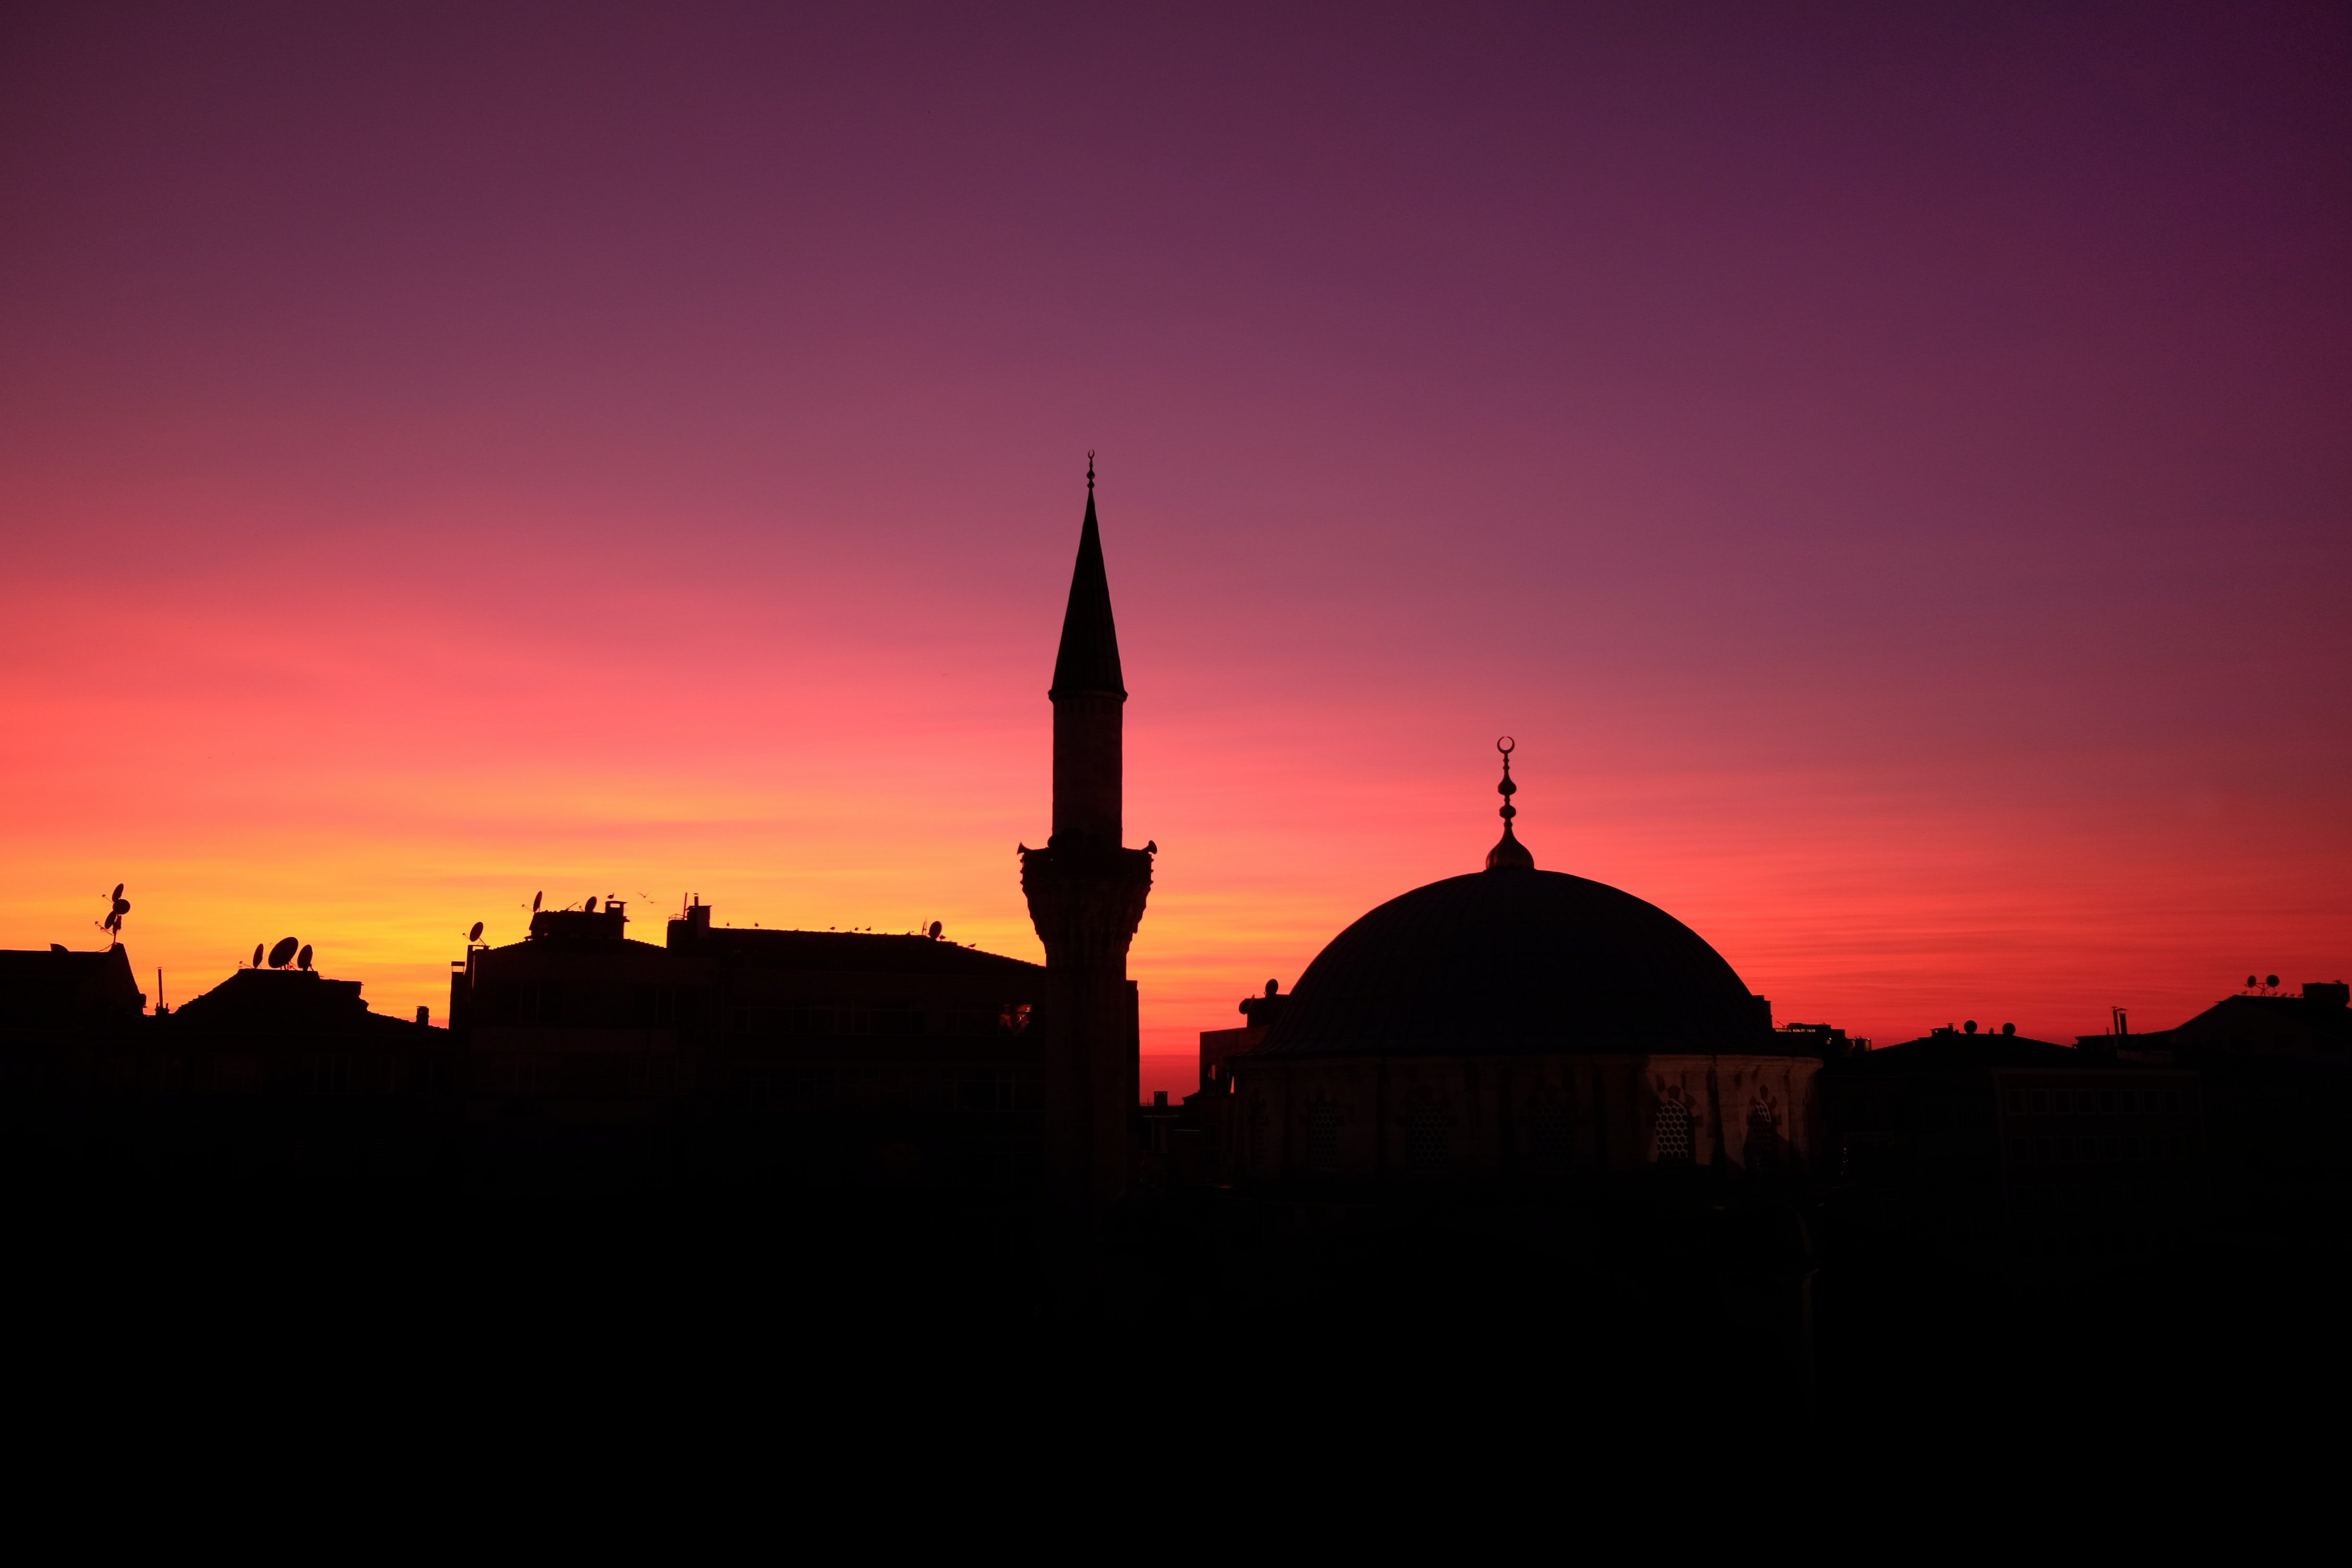 silhouette of town buildings